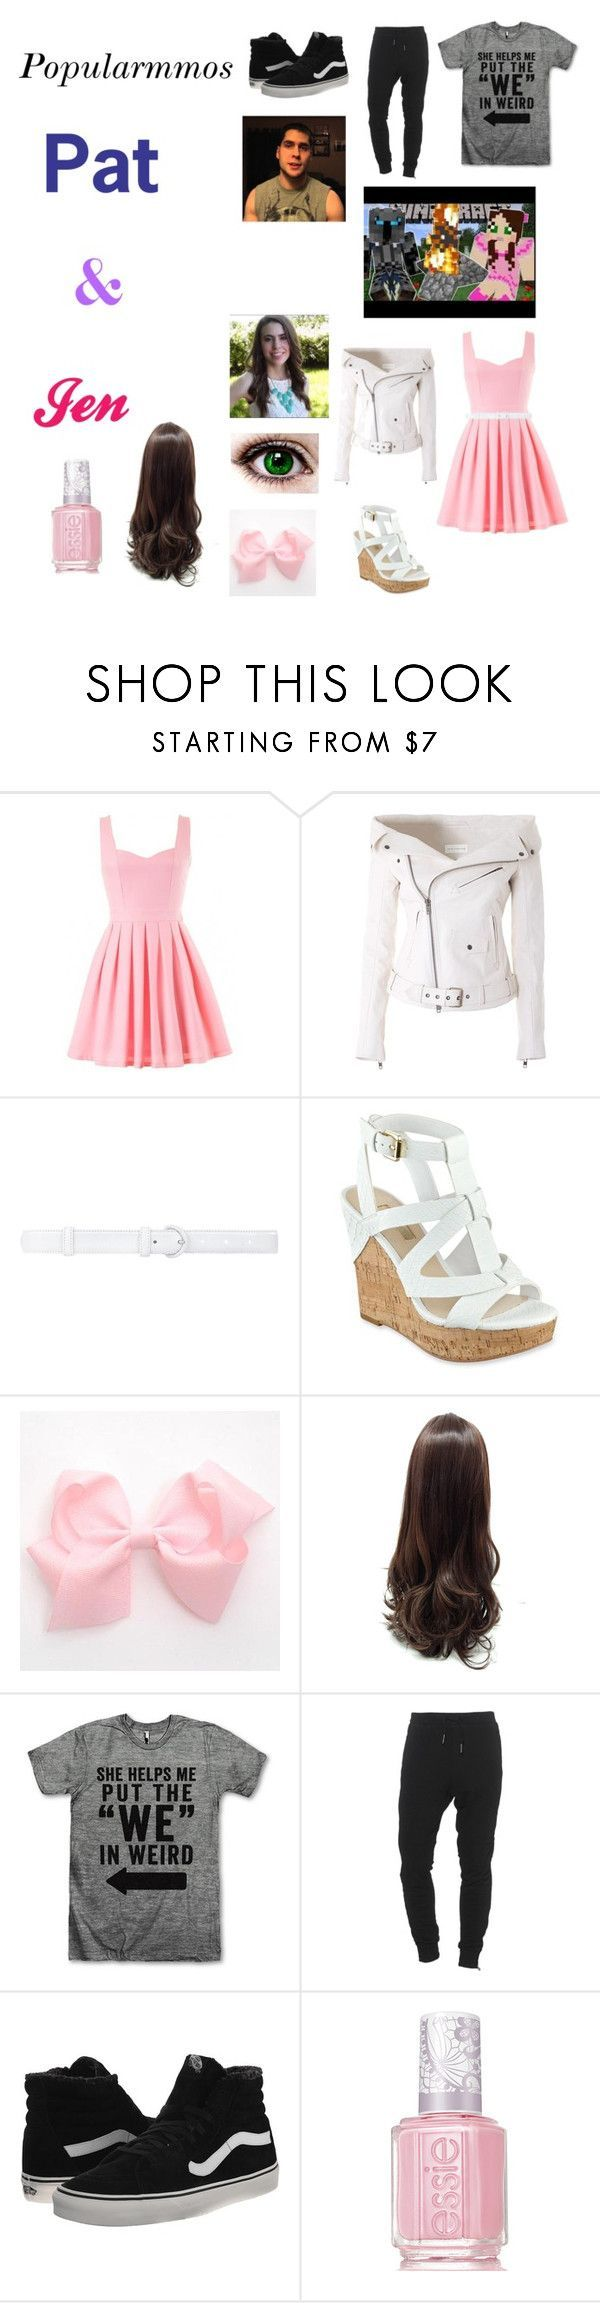 Pat and Jen~ Popularmmos by fashion-anime-animals-reading ❤ liked on Polyvore featuring Faith Connexion, Oscar de la Renta, GUESS, True Religion, Vans and Essie